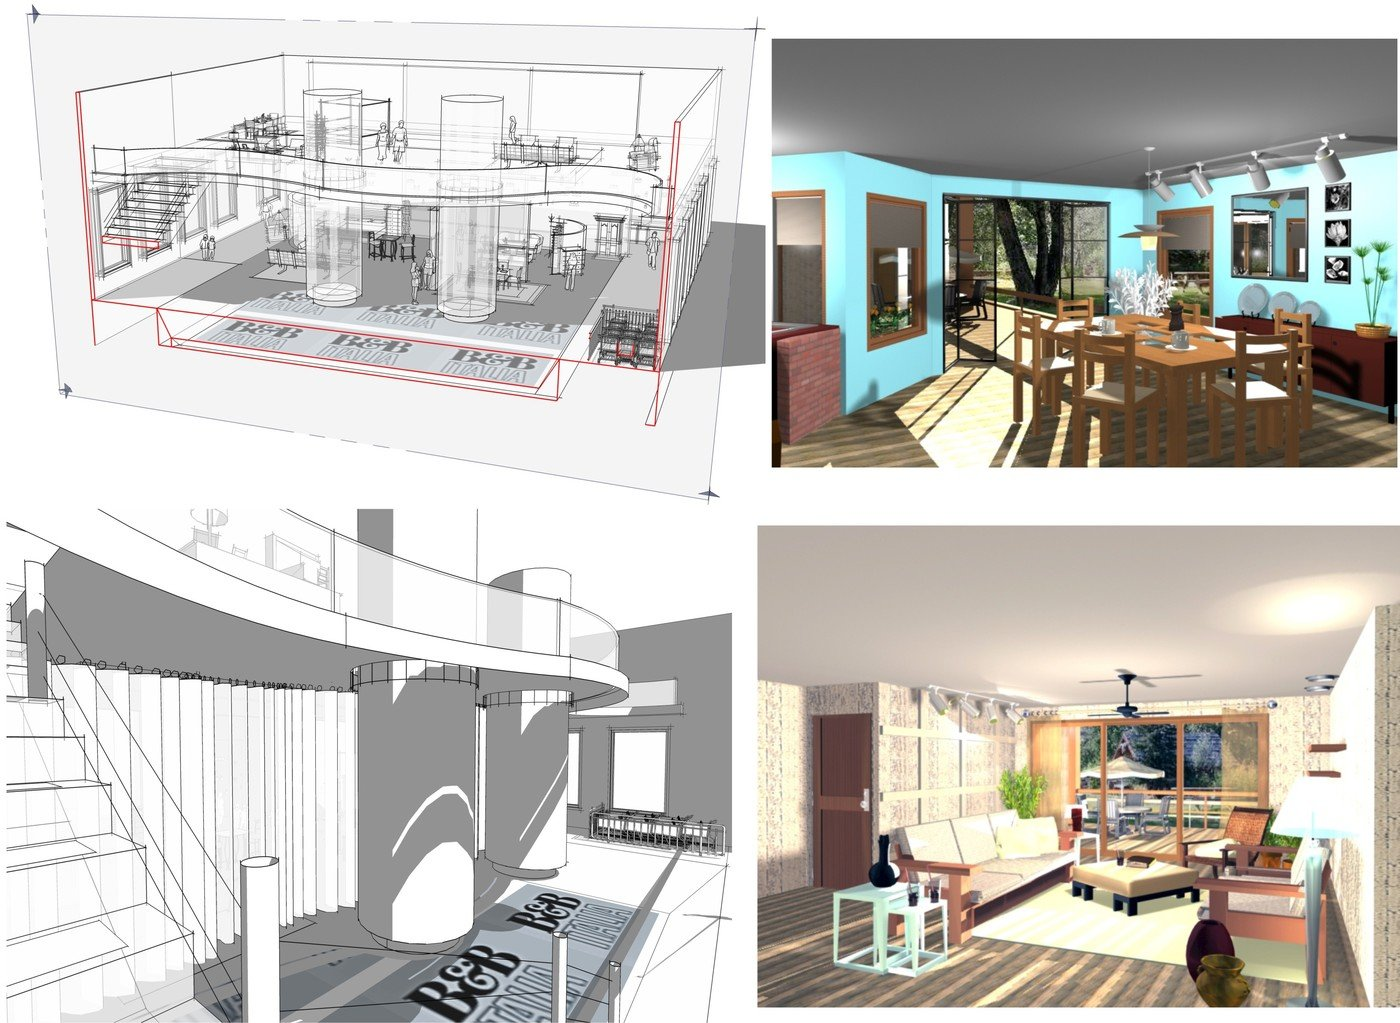 Collages Of Design Work 1   Bottom Left/top Left, Design Of Bu0026B Italia  Showroom. Perspective U0026 Cut Through Of 1st U0026 2nd Floors Google  SketchUp/Photoshop.